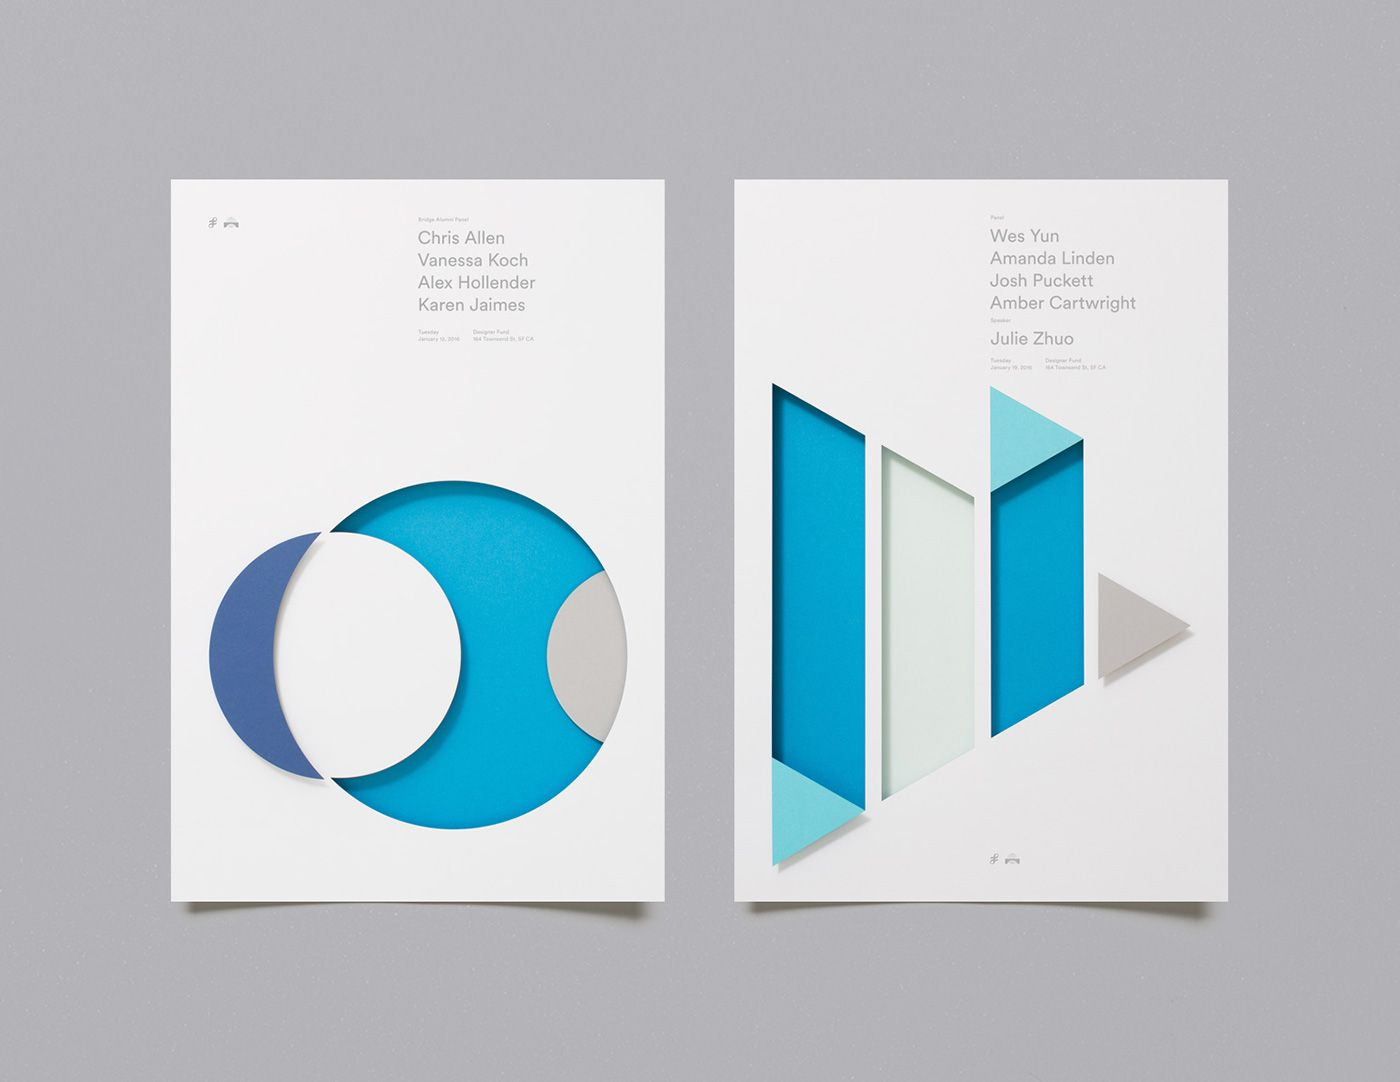 Designer Fund Bridge Speaker Series Posters On Behance Disenos De Unas Diseno De Folletos Portadas De Libros